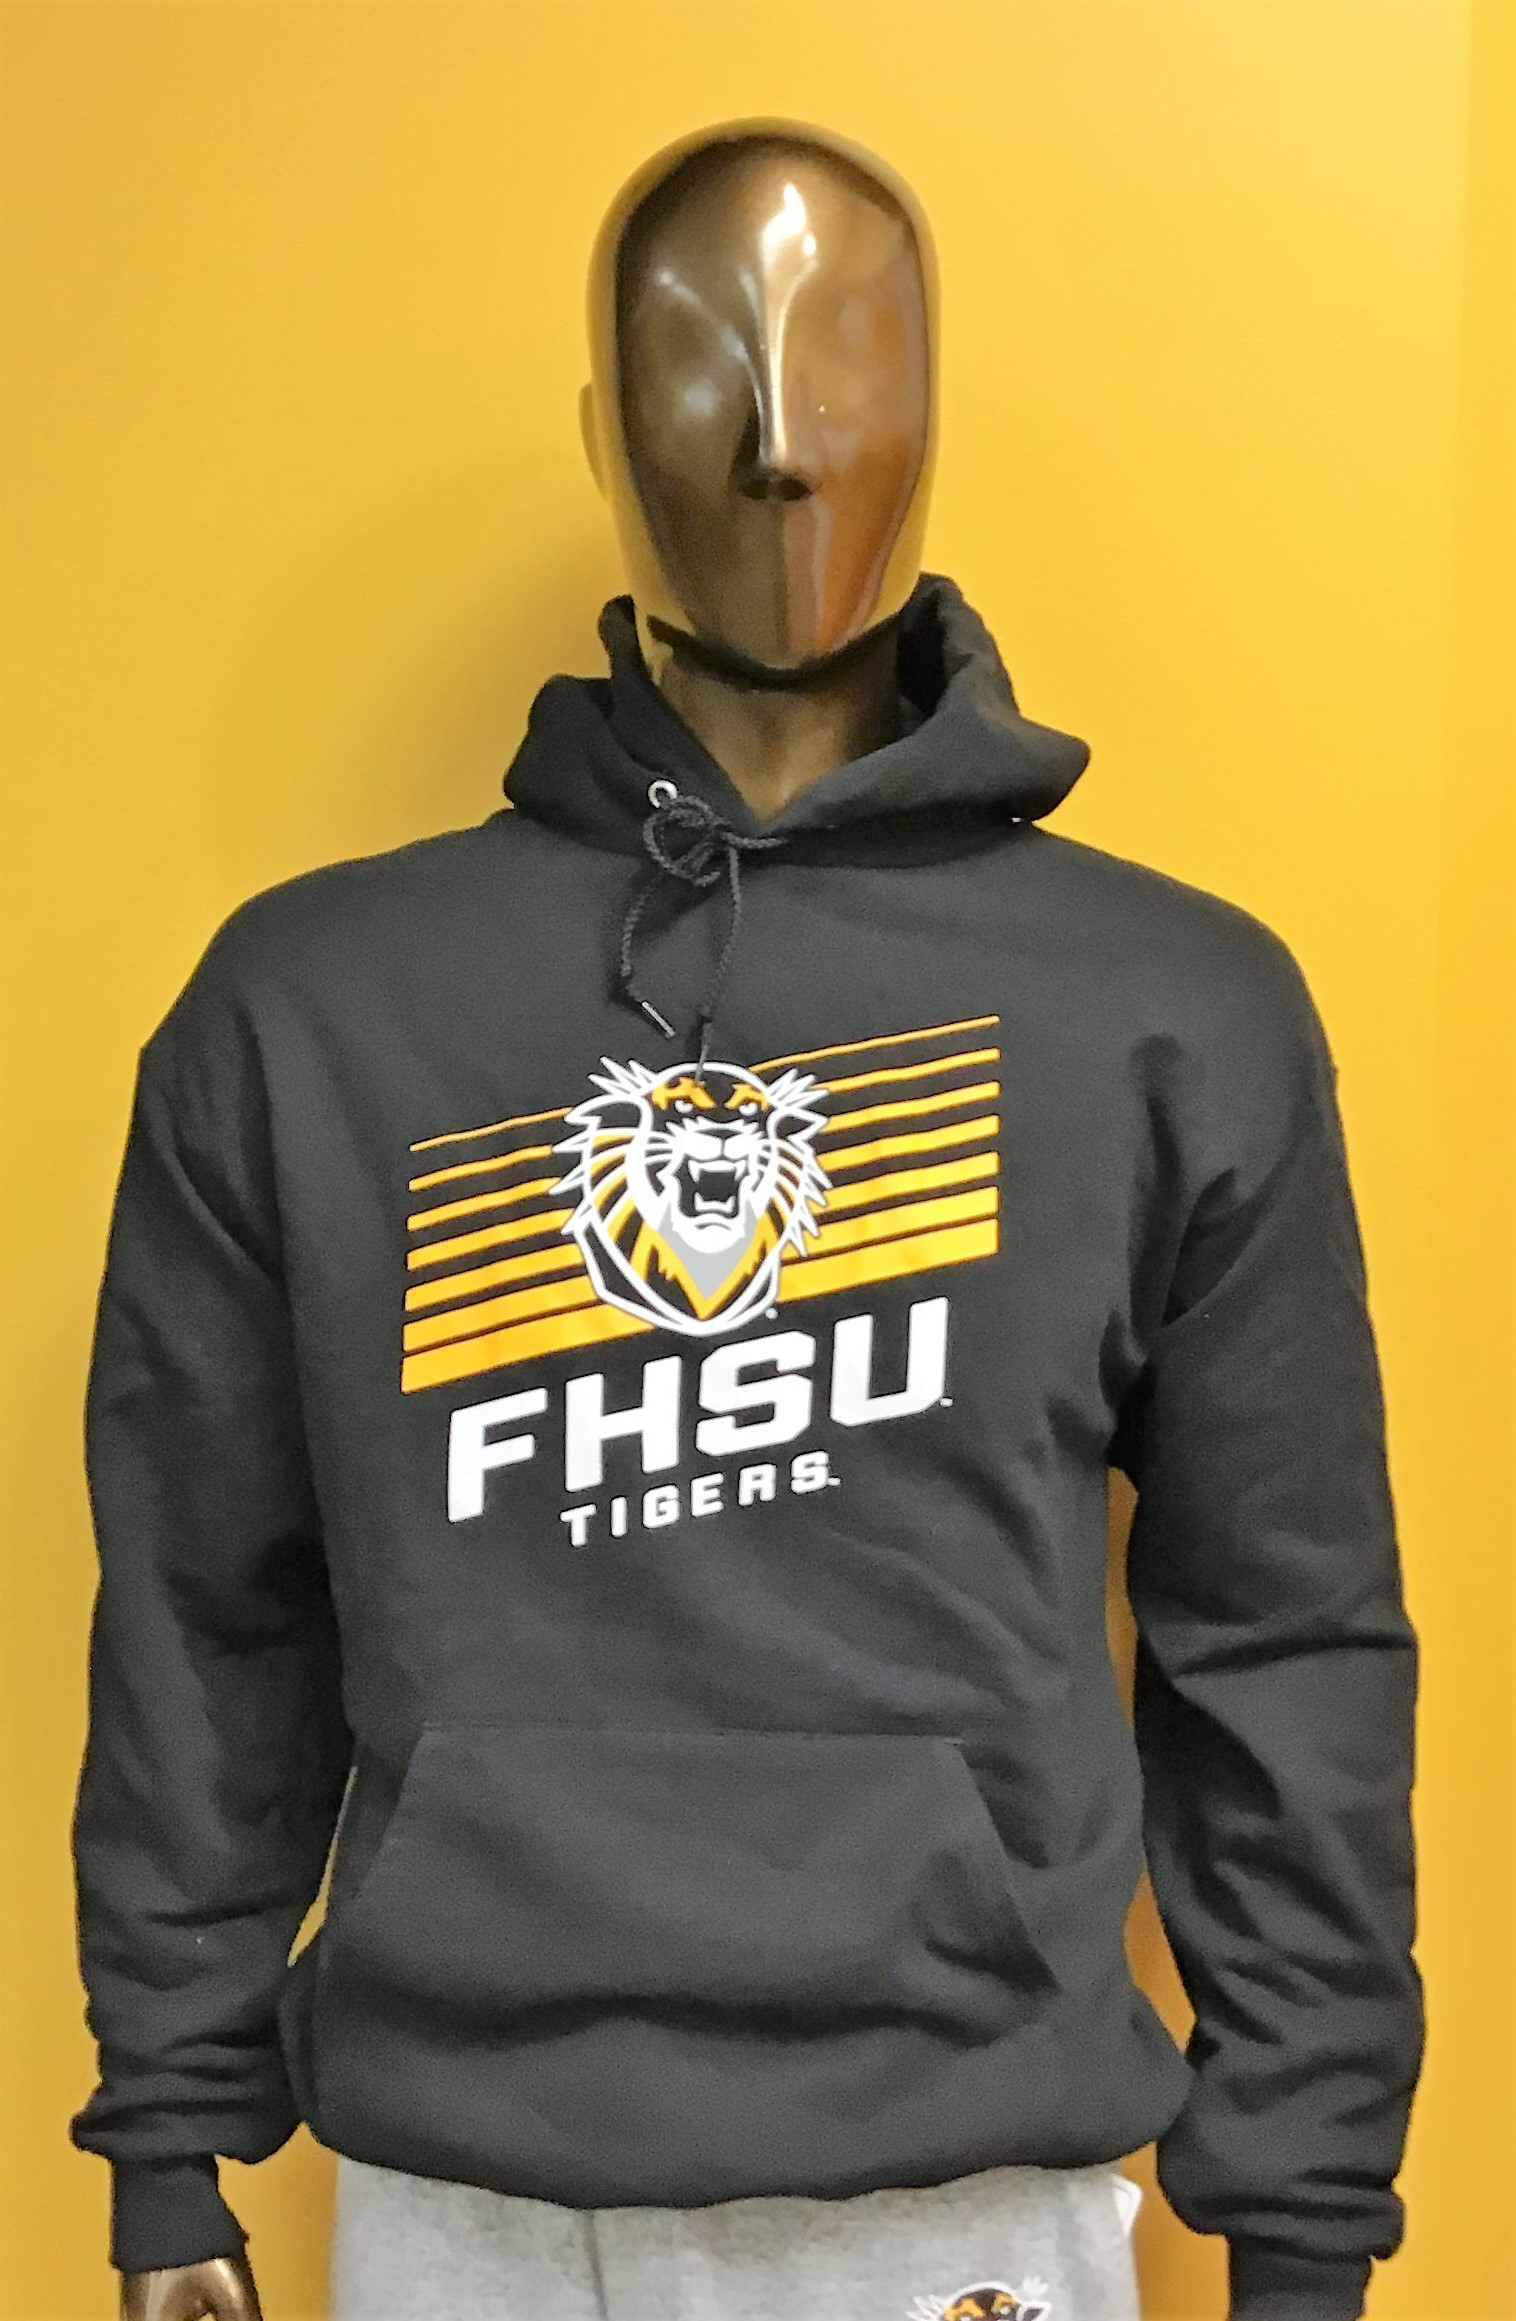 Image for the Hoodie Powerblend Sweatshirt in Black FHSU Tigers Champion product